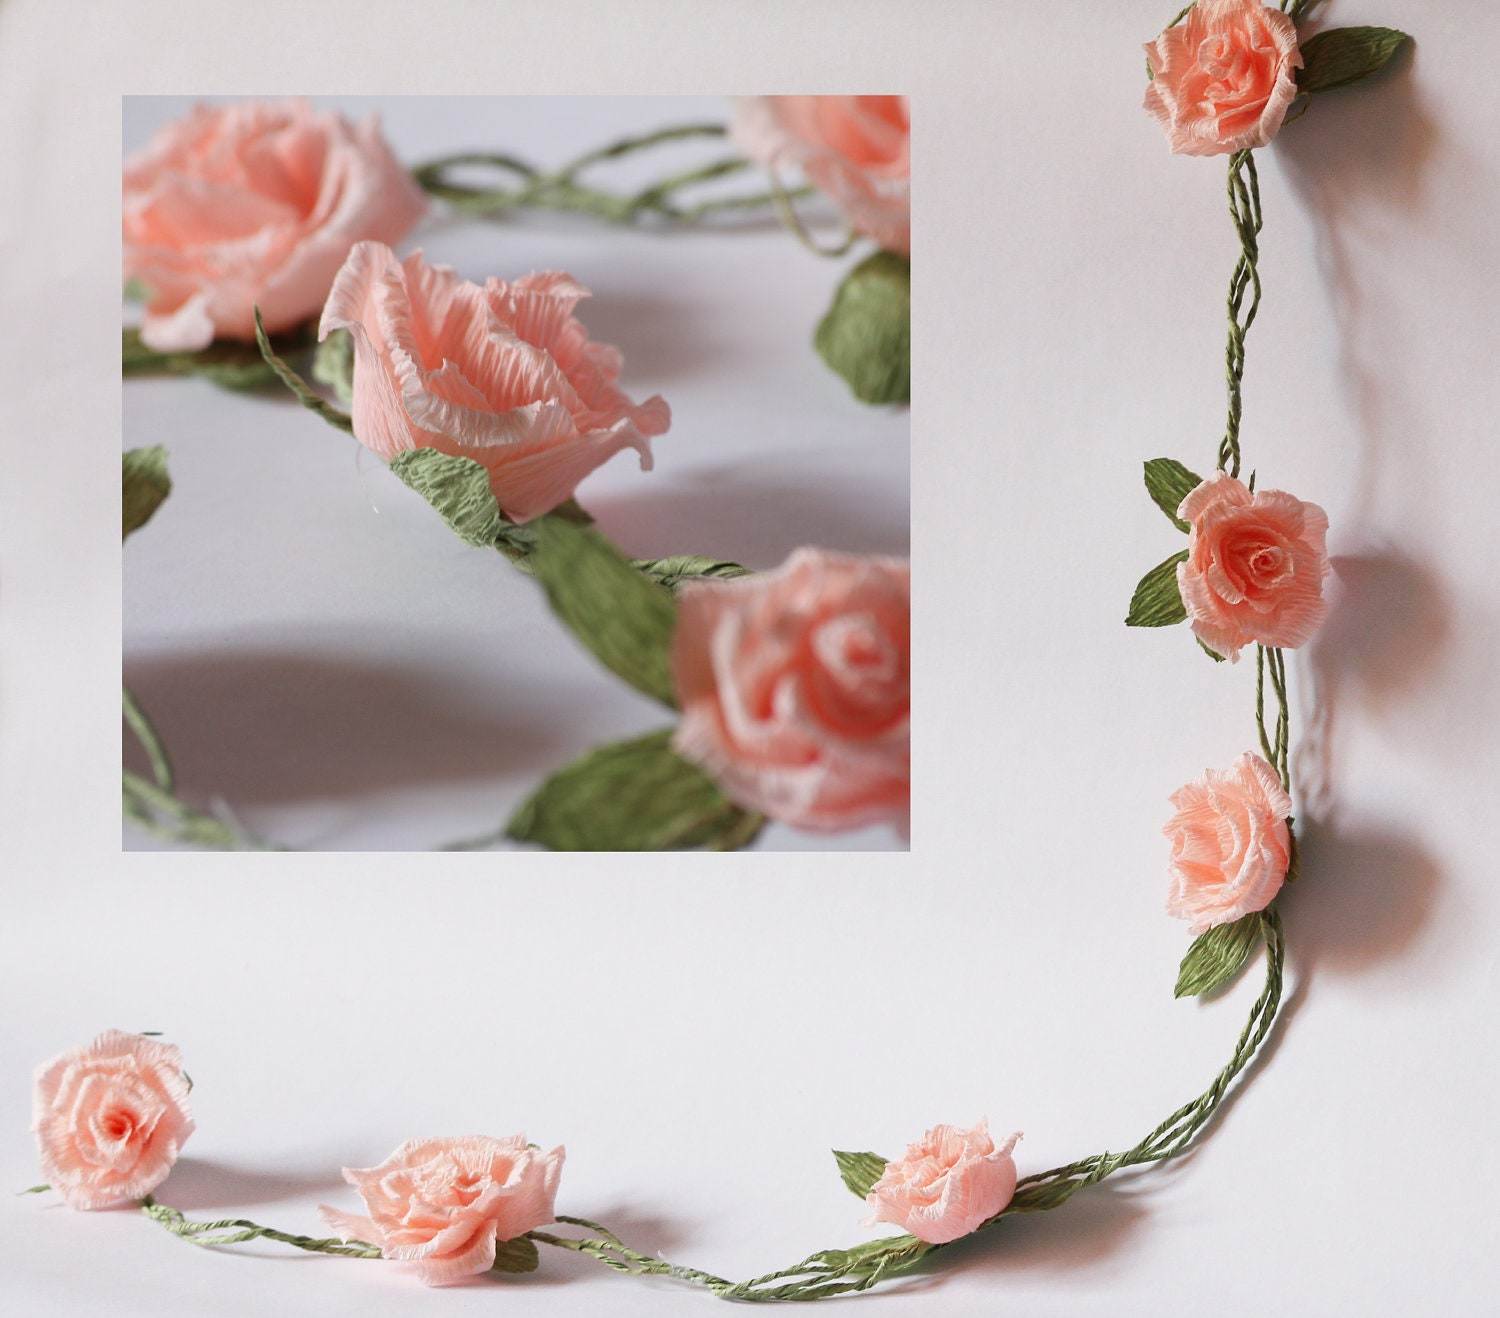 Wedding garland paper wedding garland paper flower garland zoom mightylinksfo Choice Image